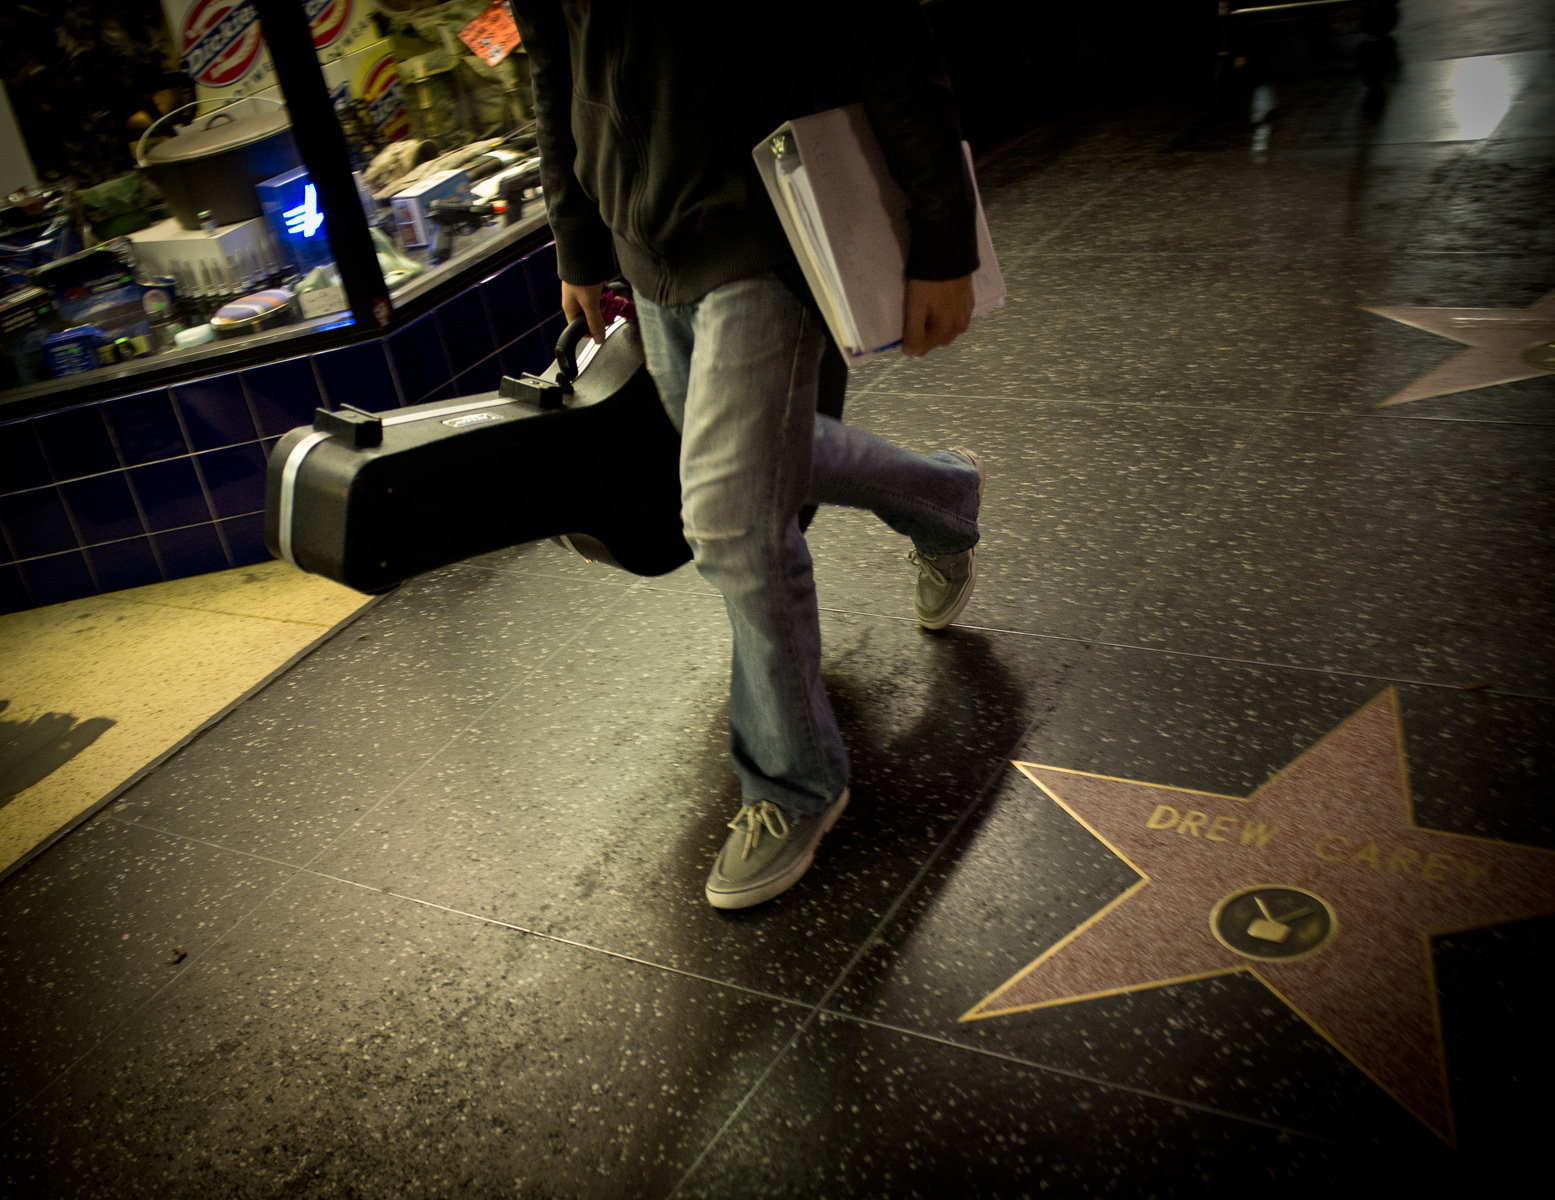 A Hollywood hopeful pounds the streets of Hollywood Boulevard in search of his dreams. Hollywood, Ca.